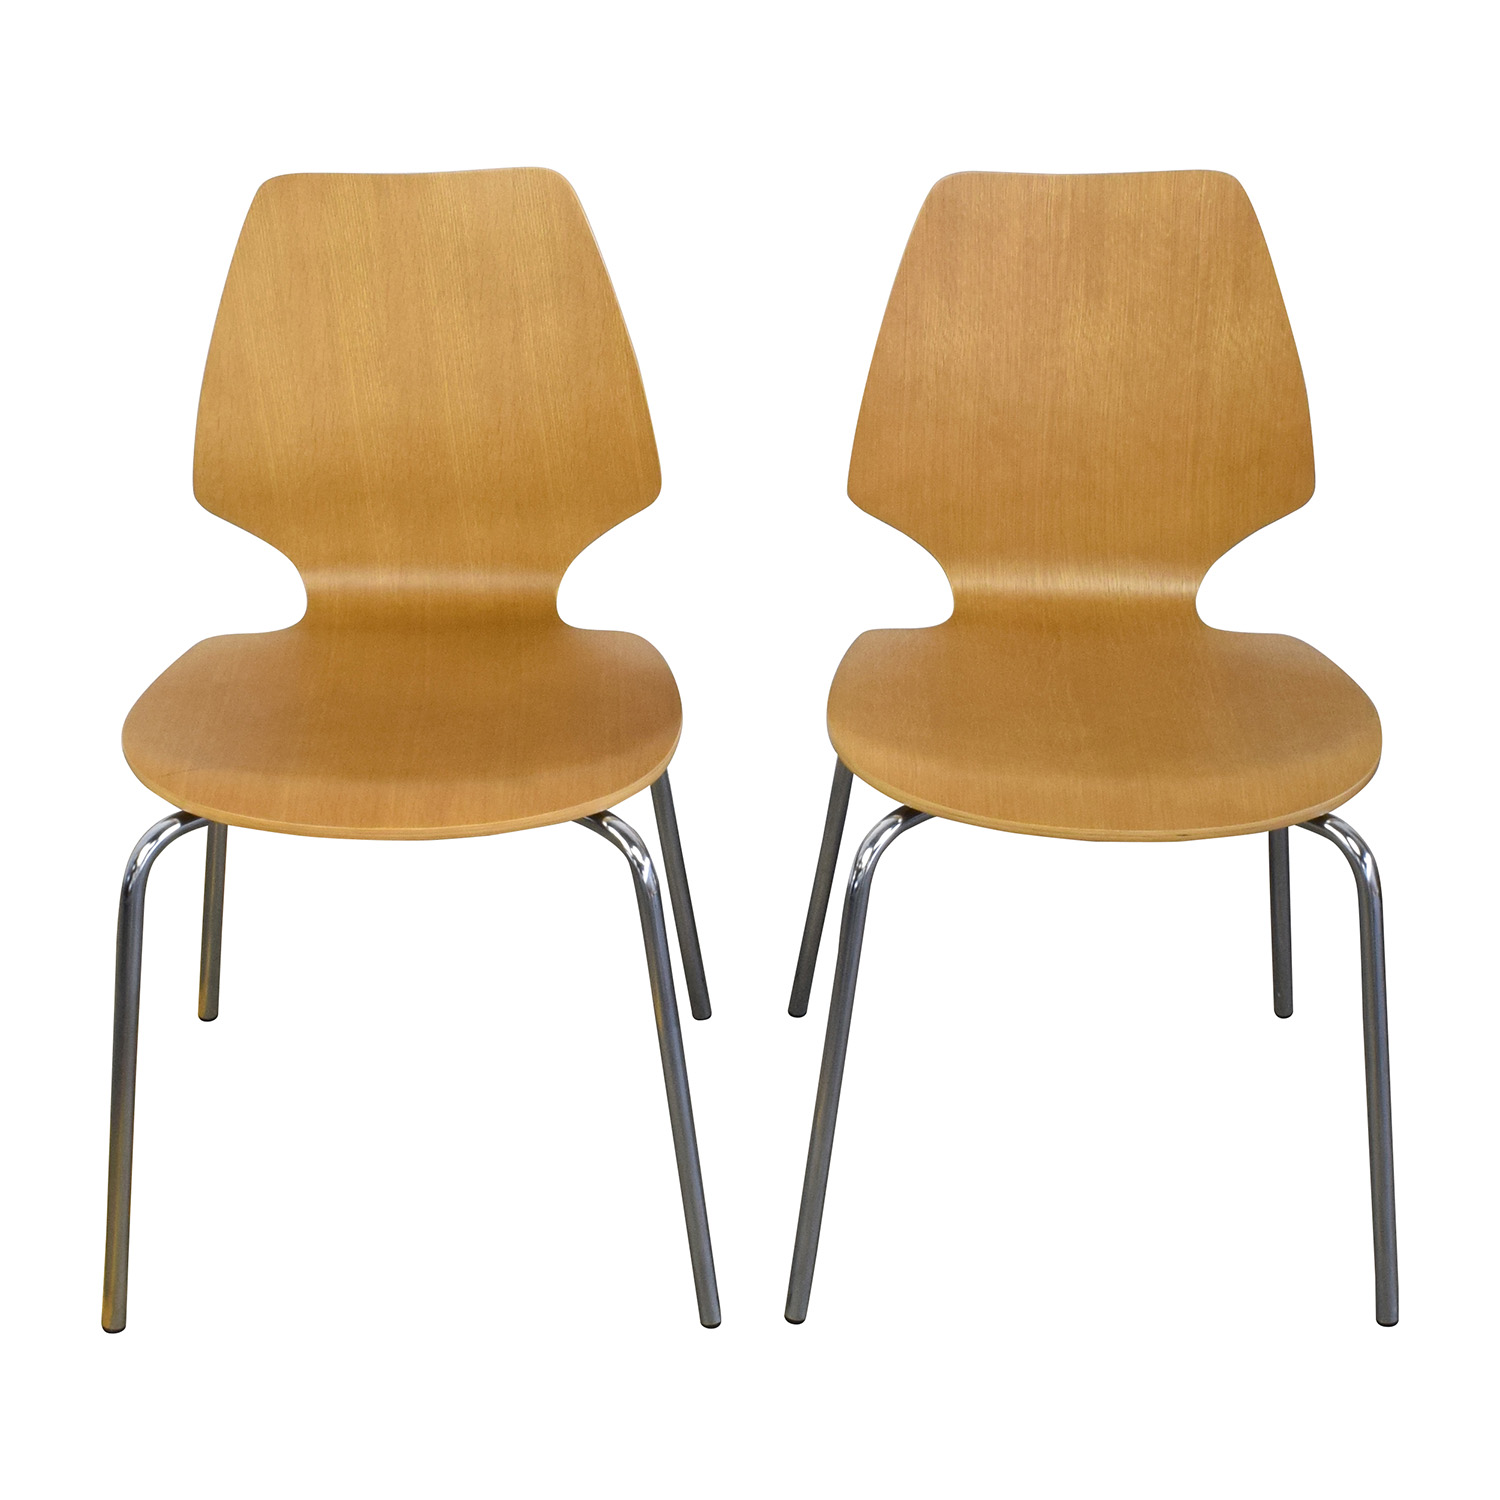 West Elm Scoop-Back Natural Wood Chairs sale